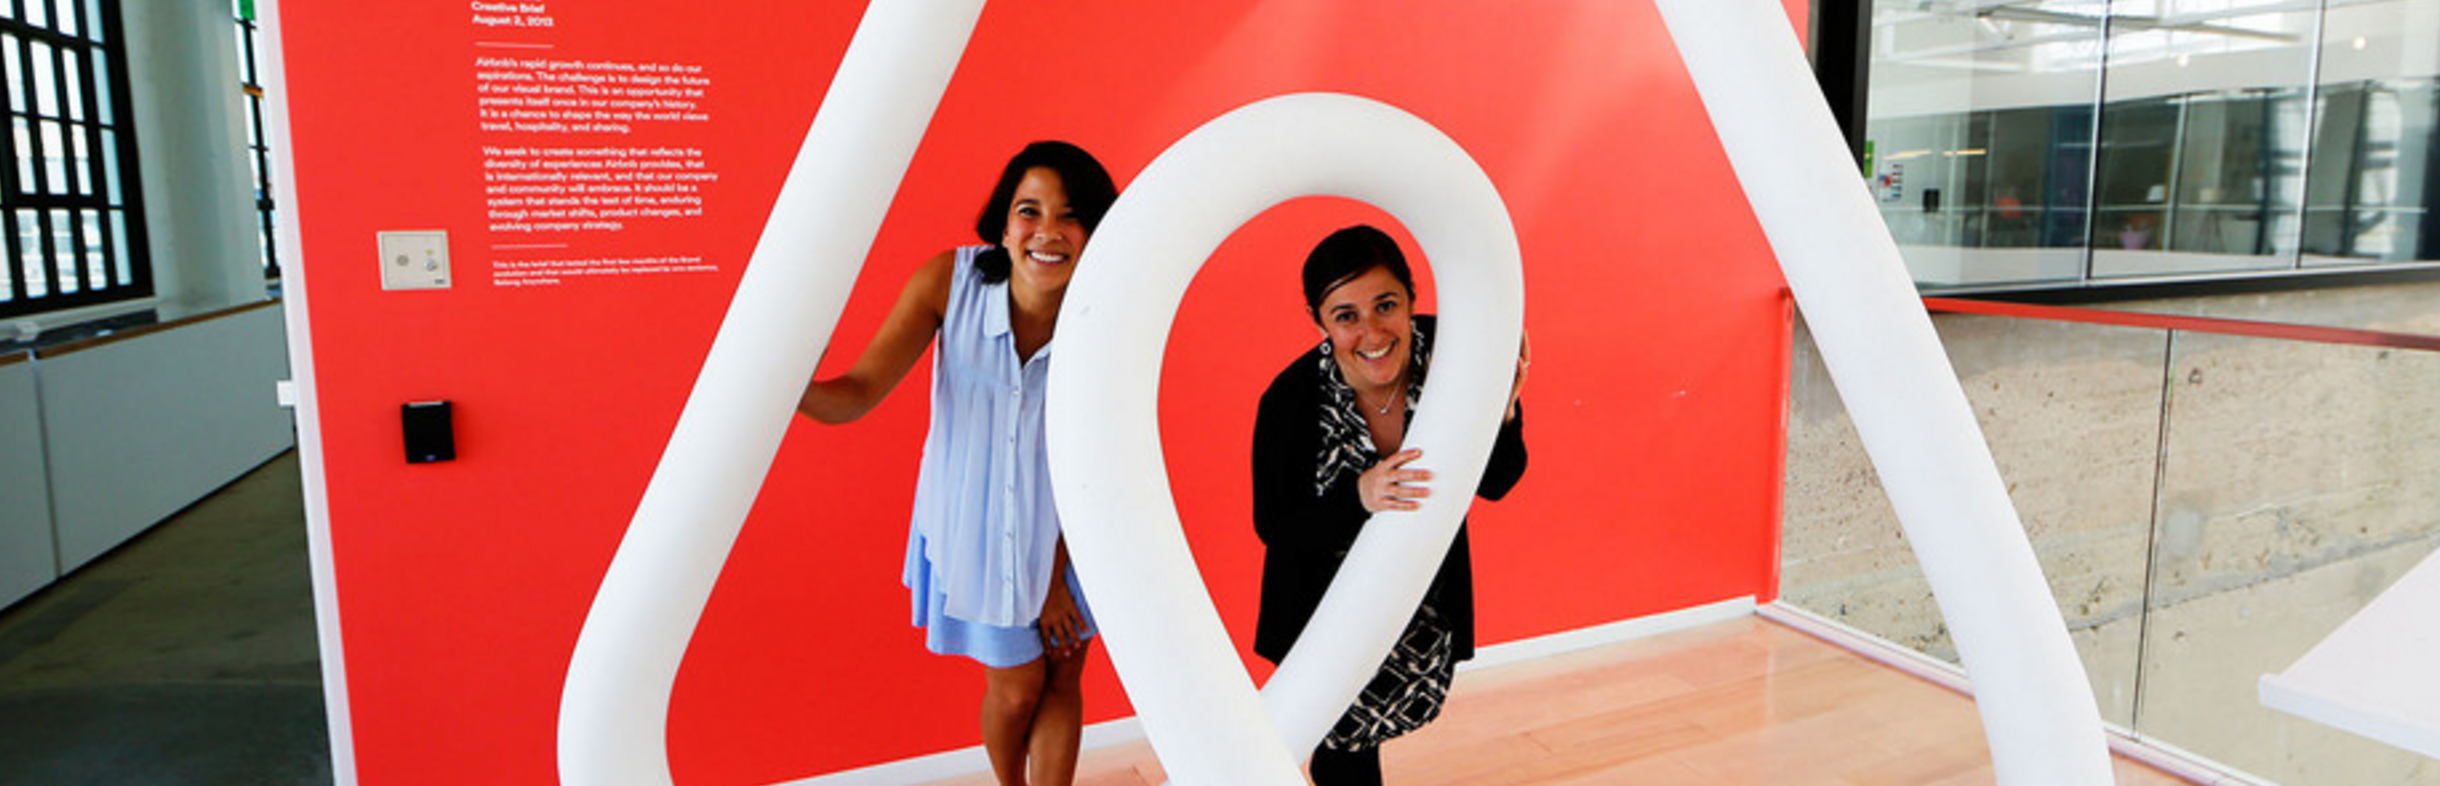 employee engagement at Airbnb